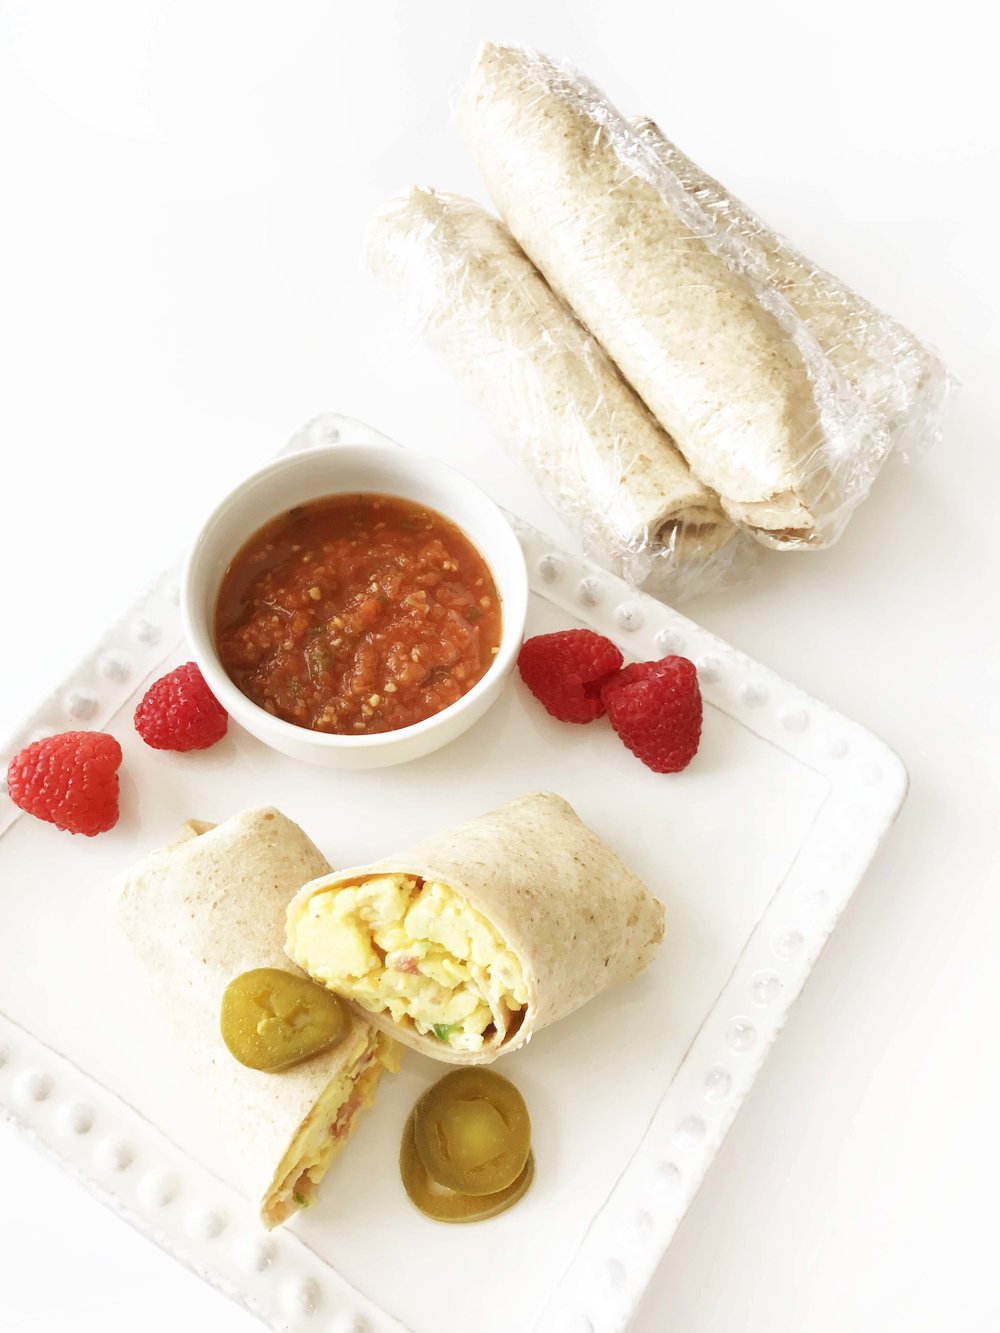 These Particular Burritos Are Betterforyou With A Multigrain Tortilla,  Swapping In Some Egg Whites, And Loading It All Up With Plenty Of Veggies  And